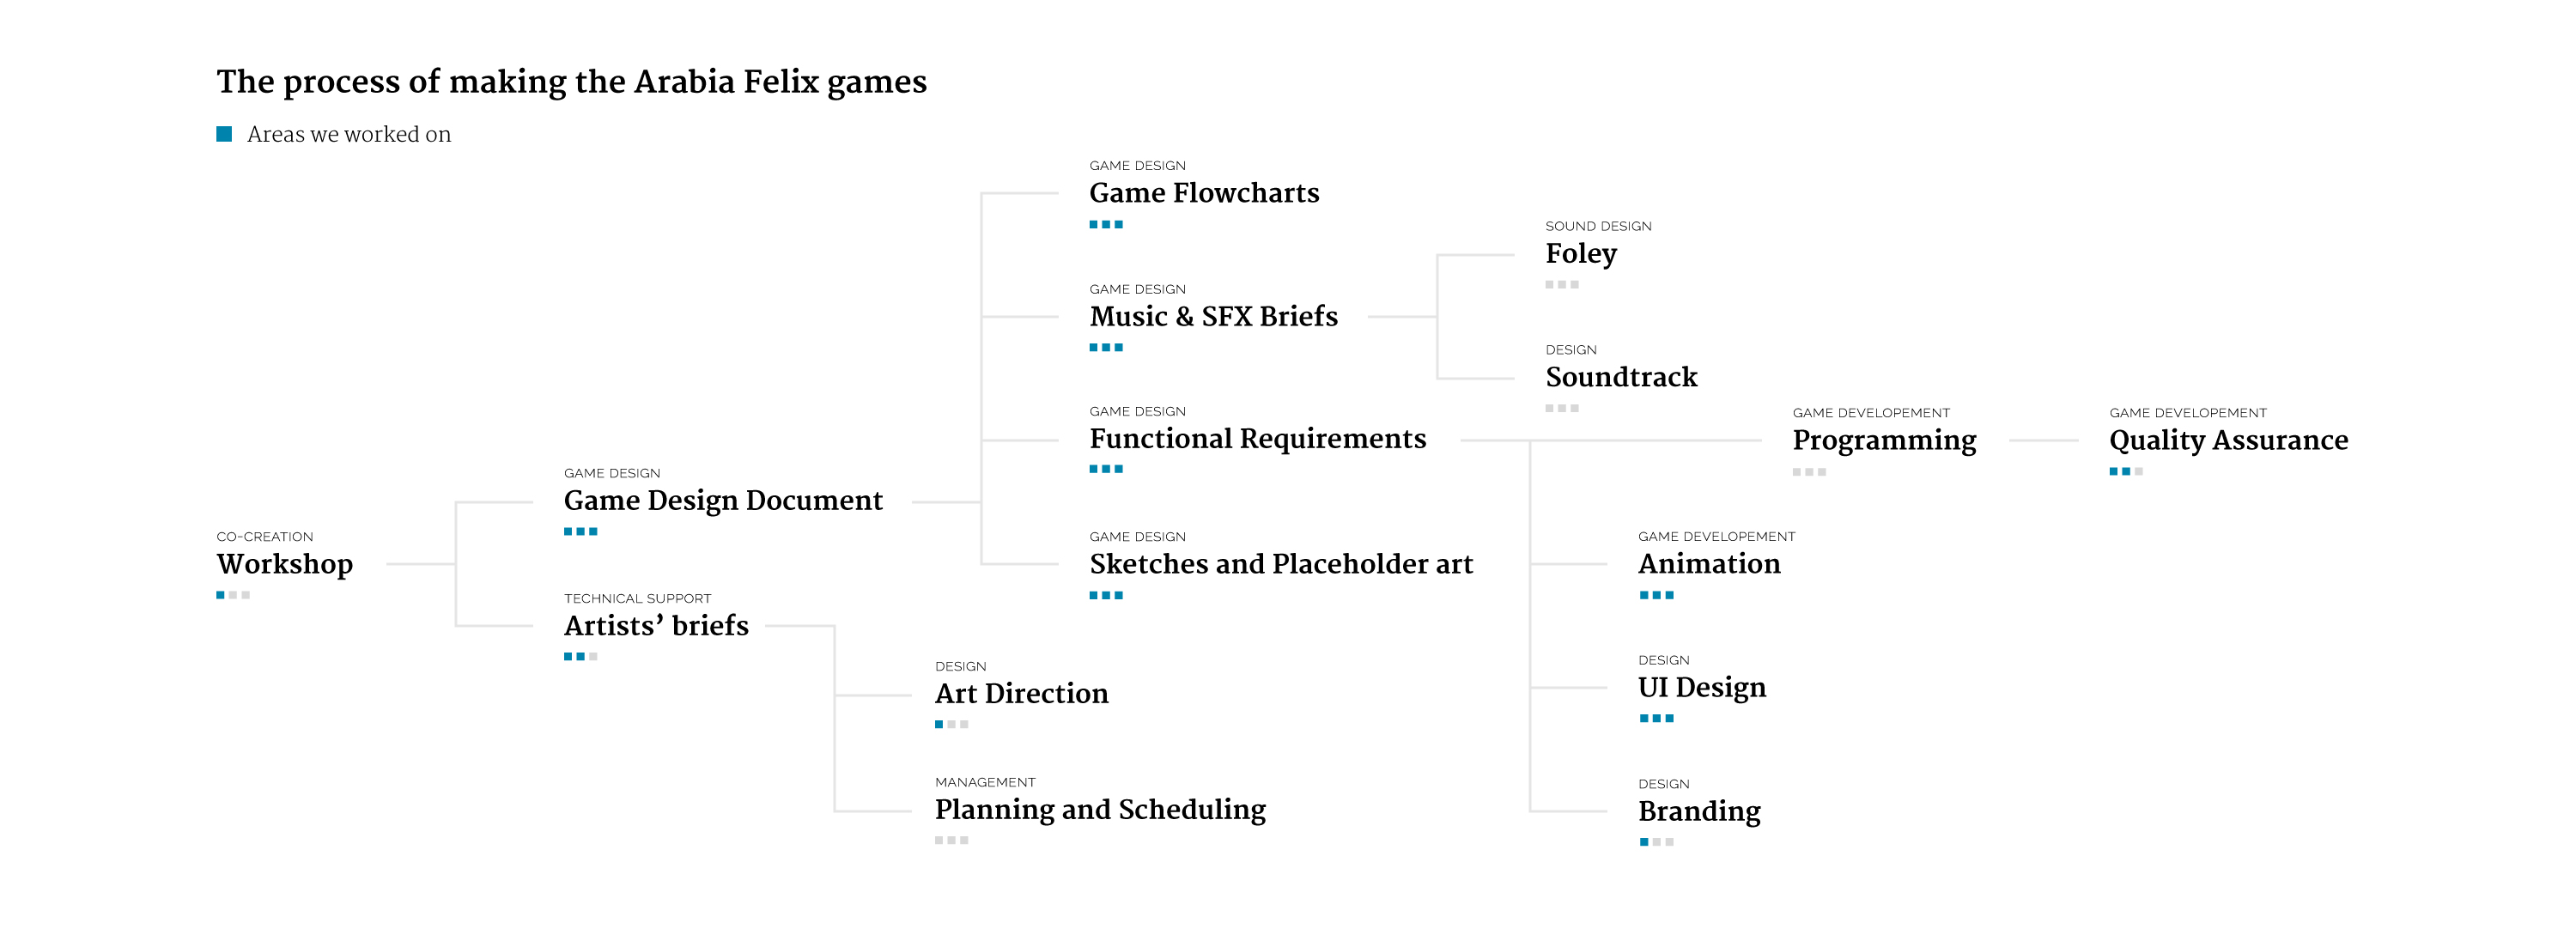 A chart of all the activities of game development with indications of our participation